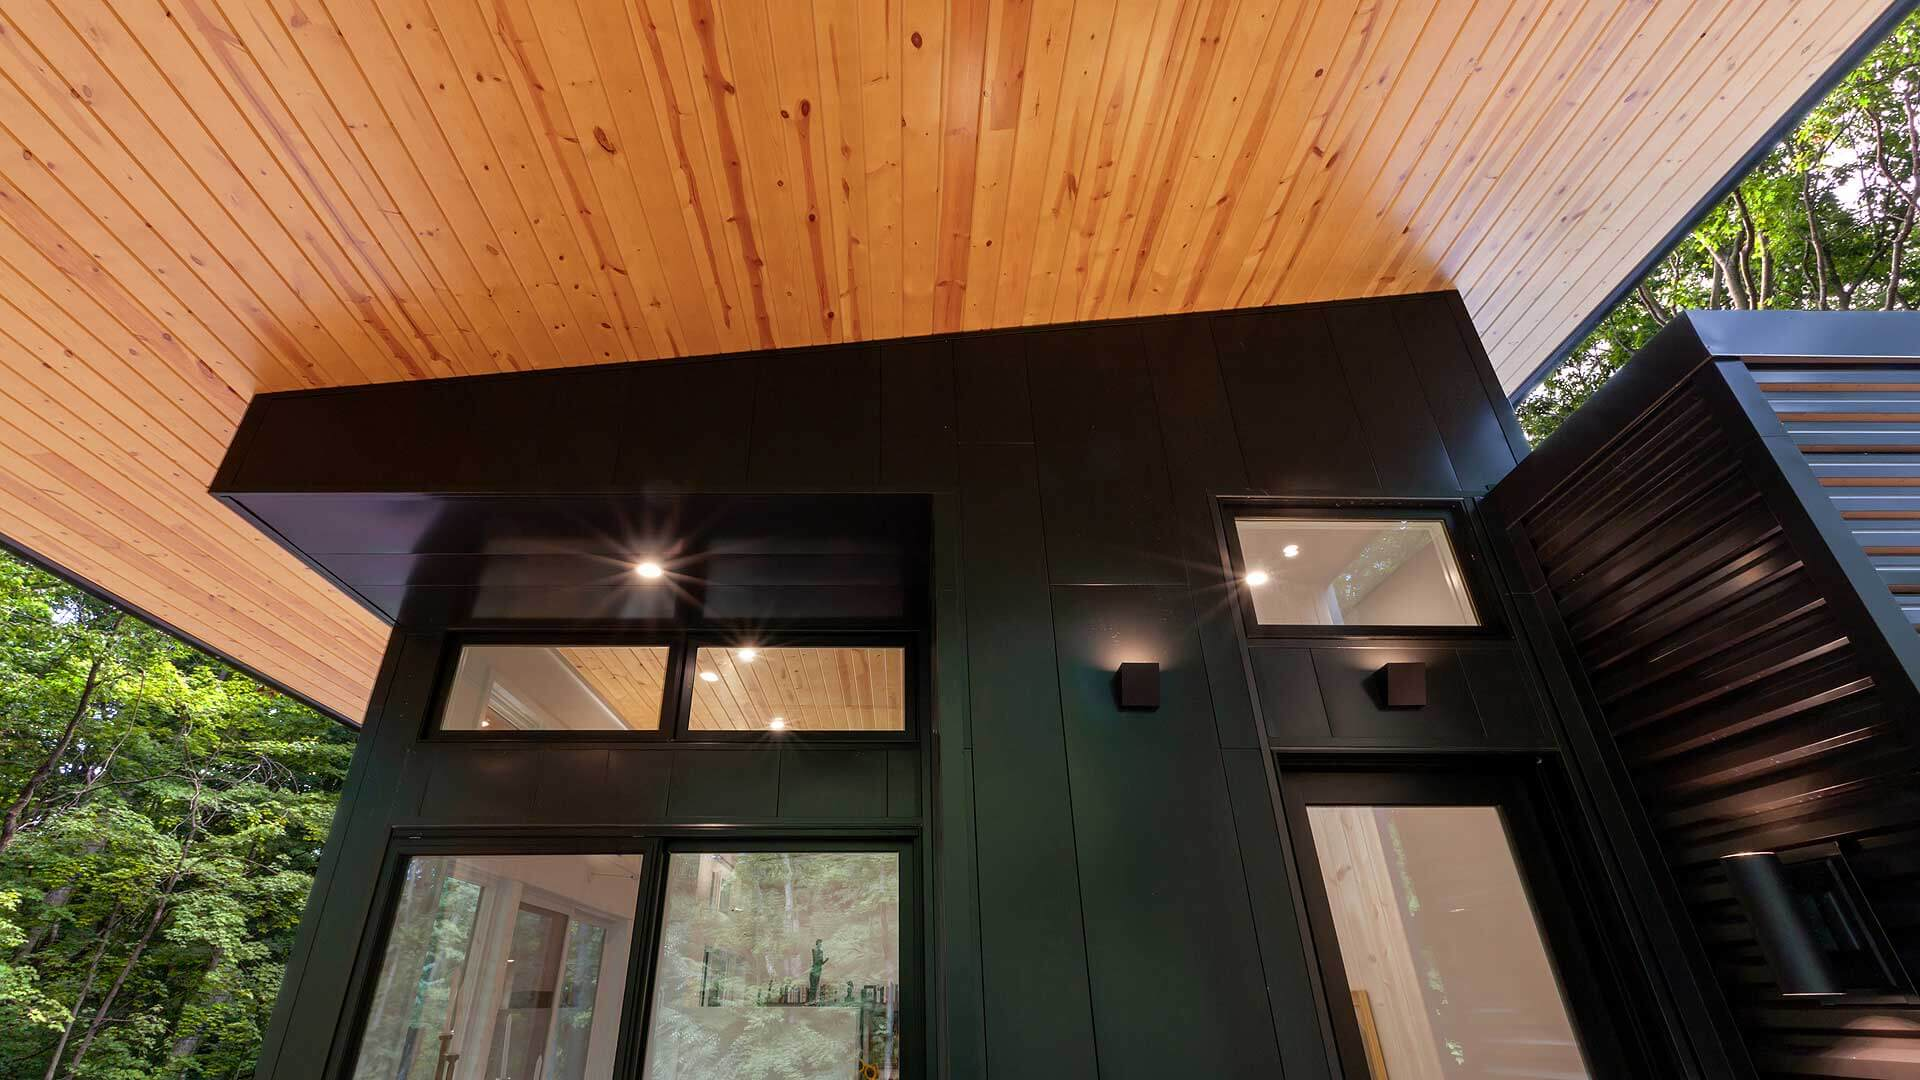 Stained Pine ceiling cladding, black metal siding, black corrugated siding, up-down lighting, blacEntry Porch Ceiling + Entry - Bridge House - Fennville, Michigan - Lake Michigan